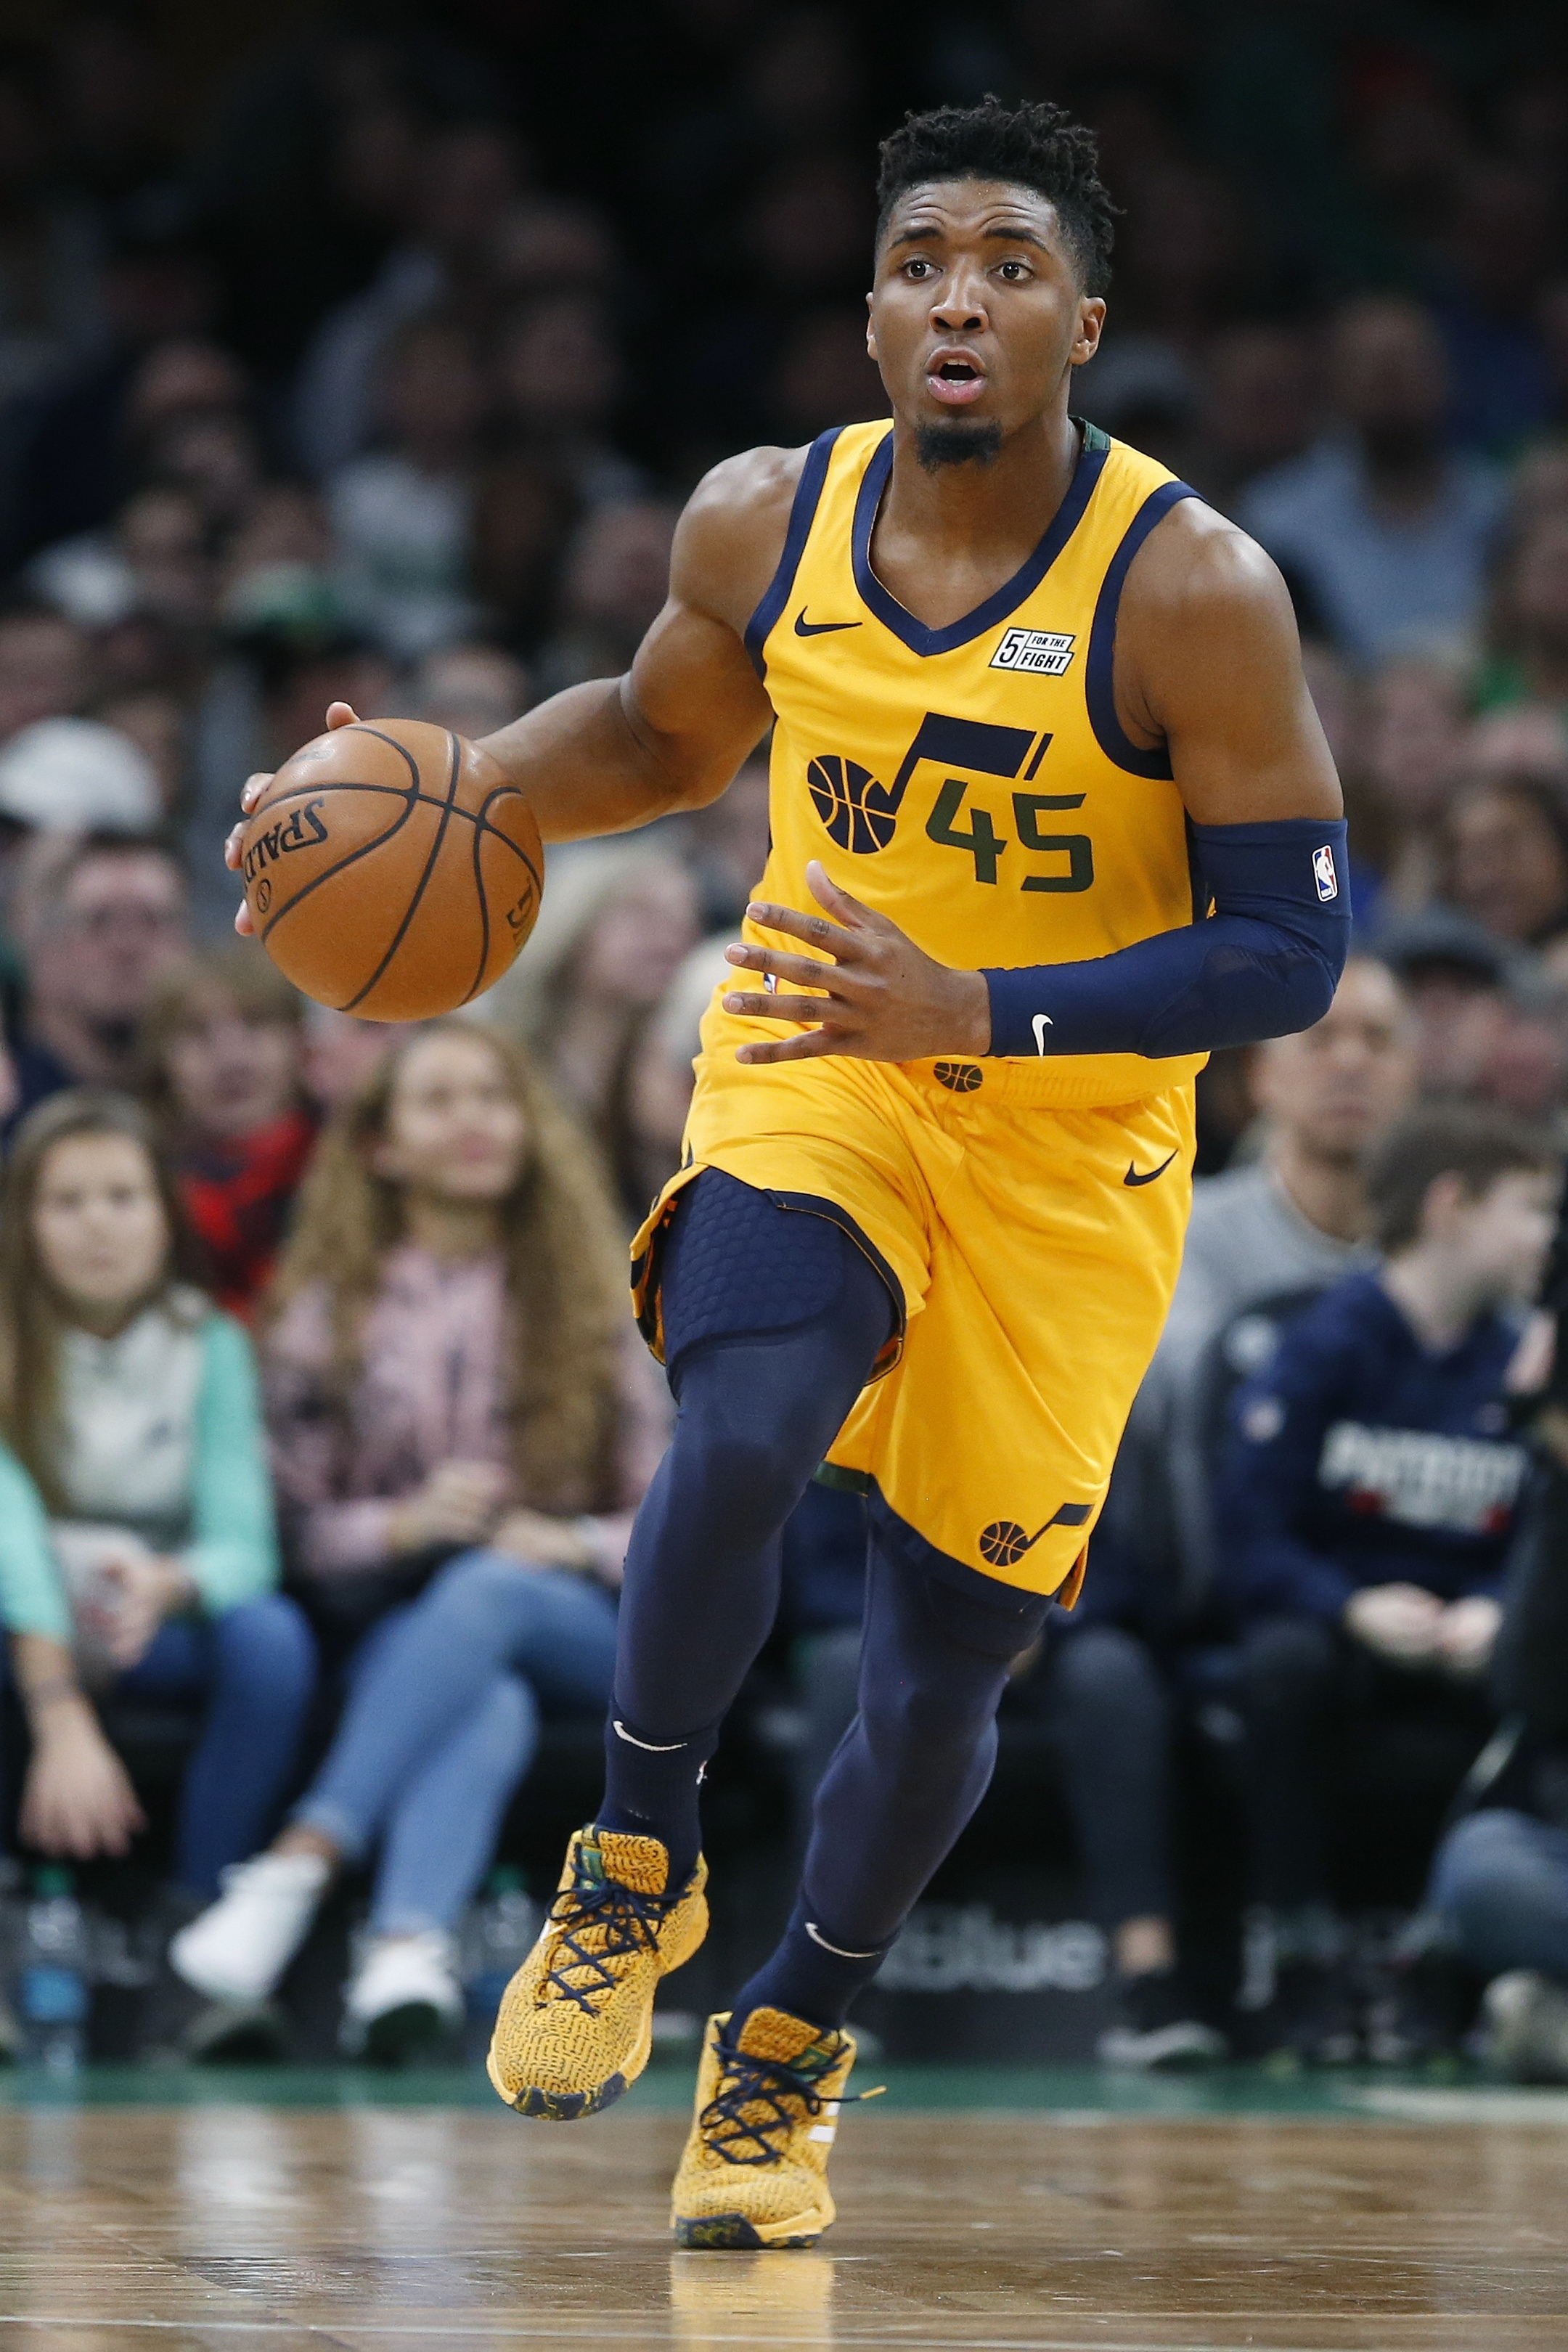 Utah Jazz's Donovan Mitchell (45) plays against the Boston Celtics during the first half on an NBA basketball game in Boston, Saturday, Nov. 17, 2018. (AP Photo/Michael Dwyer)